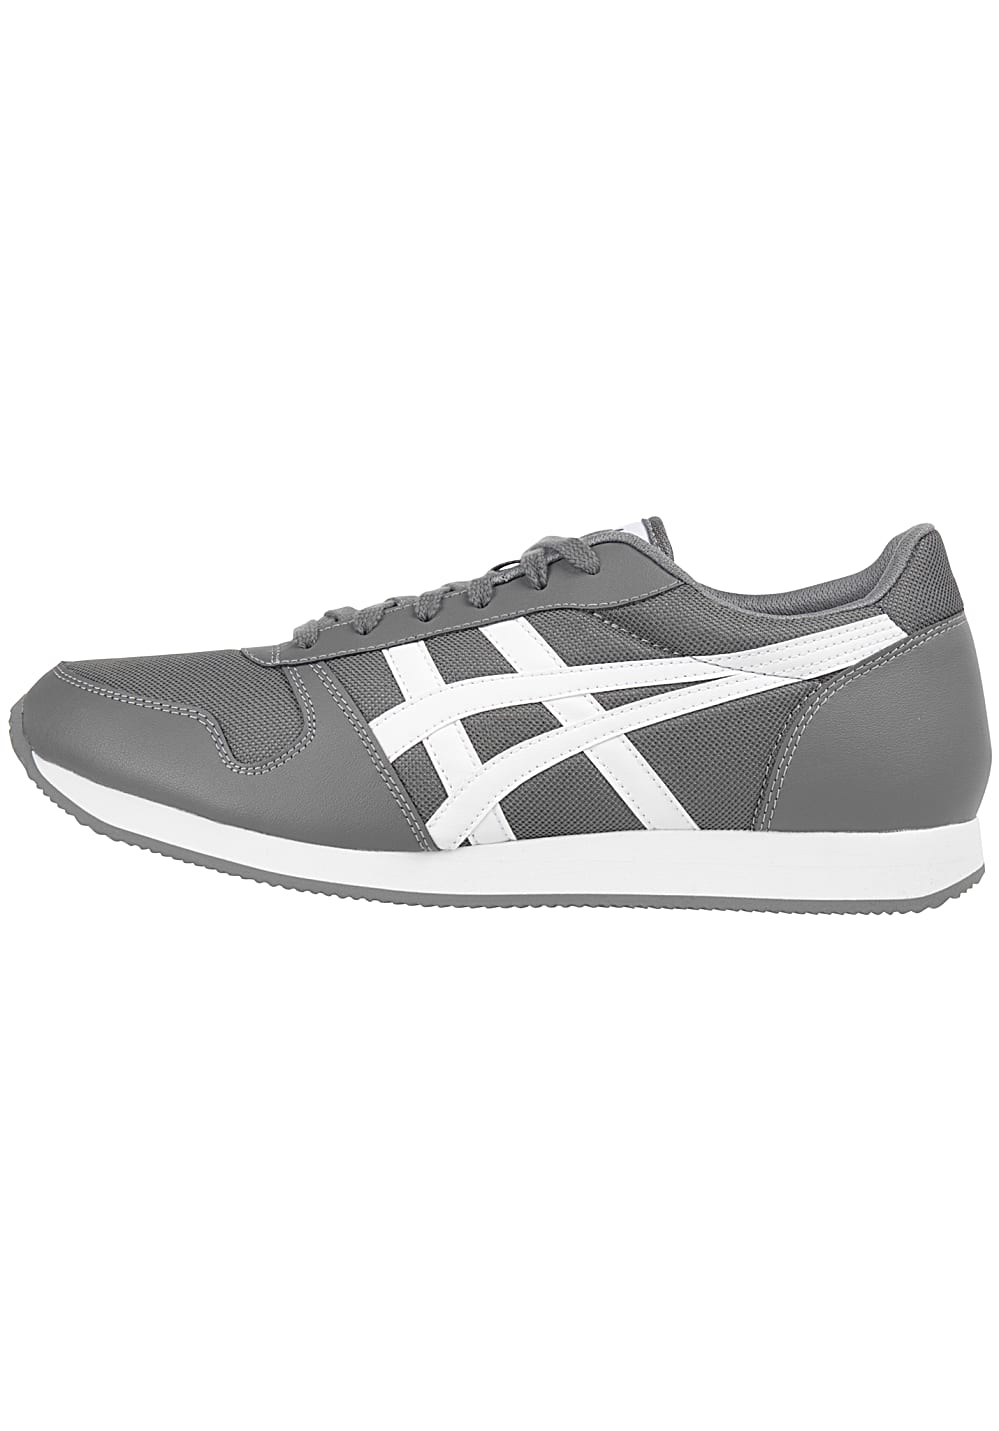 new style 2f3f1 99bd1 Asics Tiger Curreo II - Sneakers for Men - Grey - Planet Sports